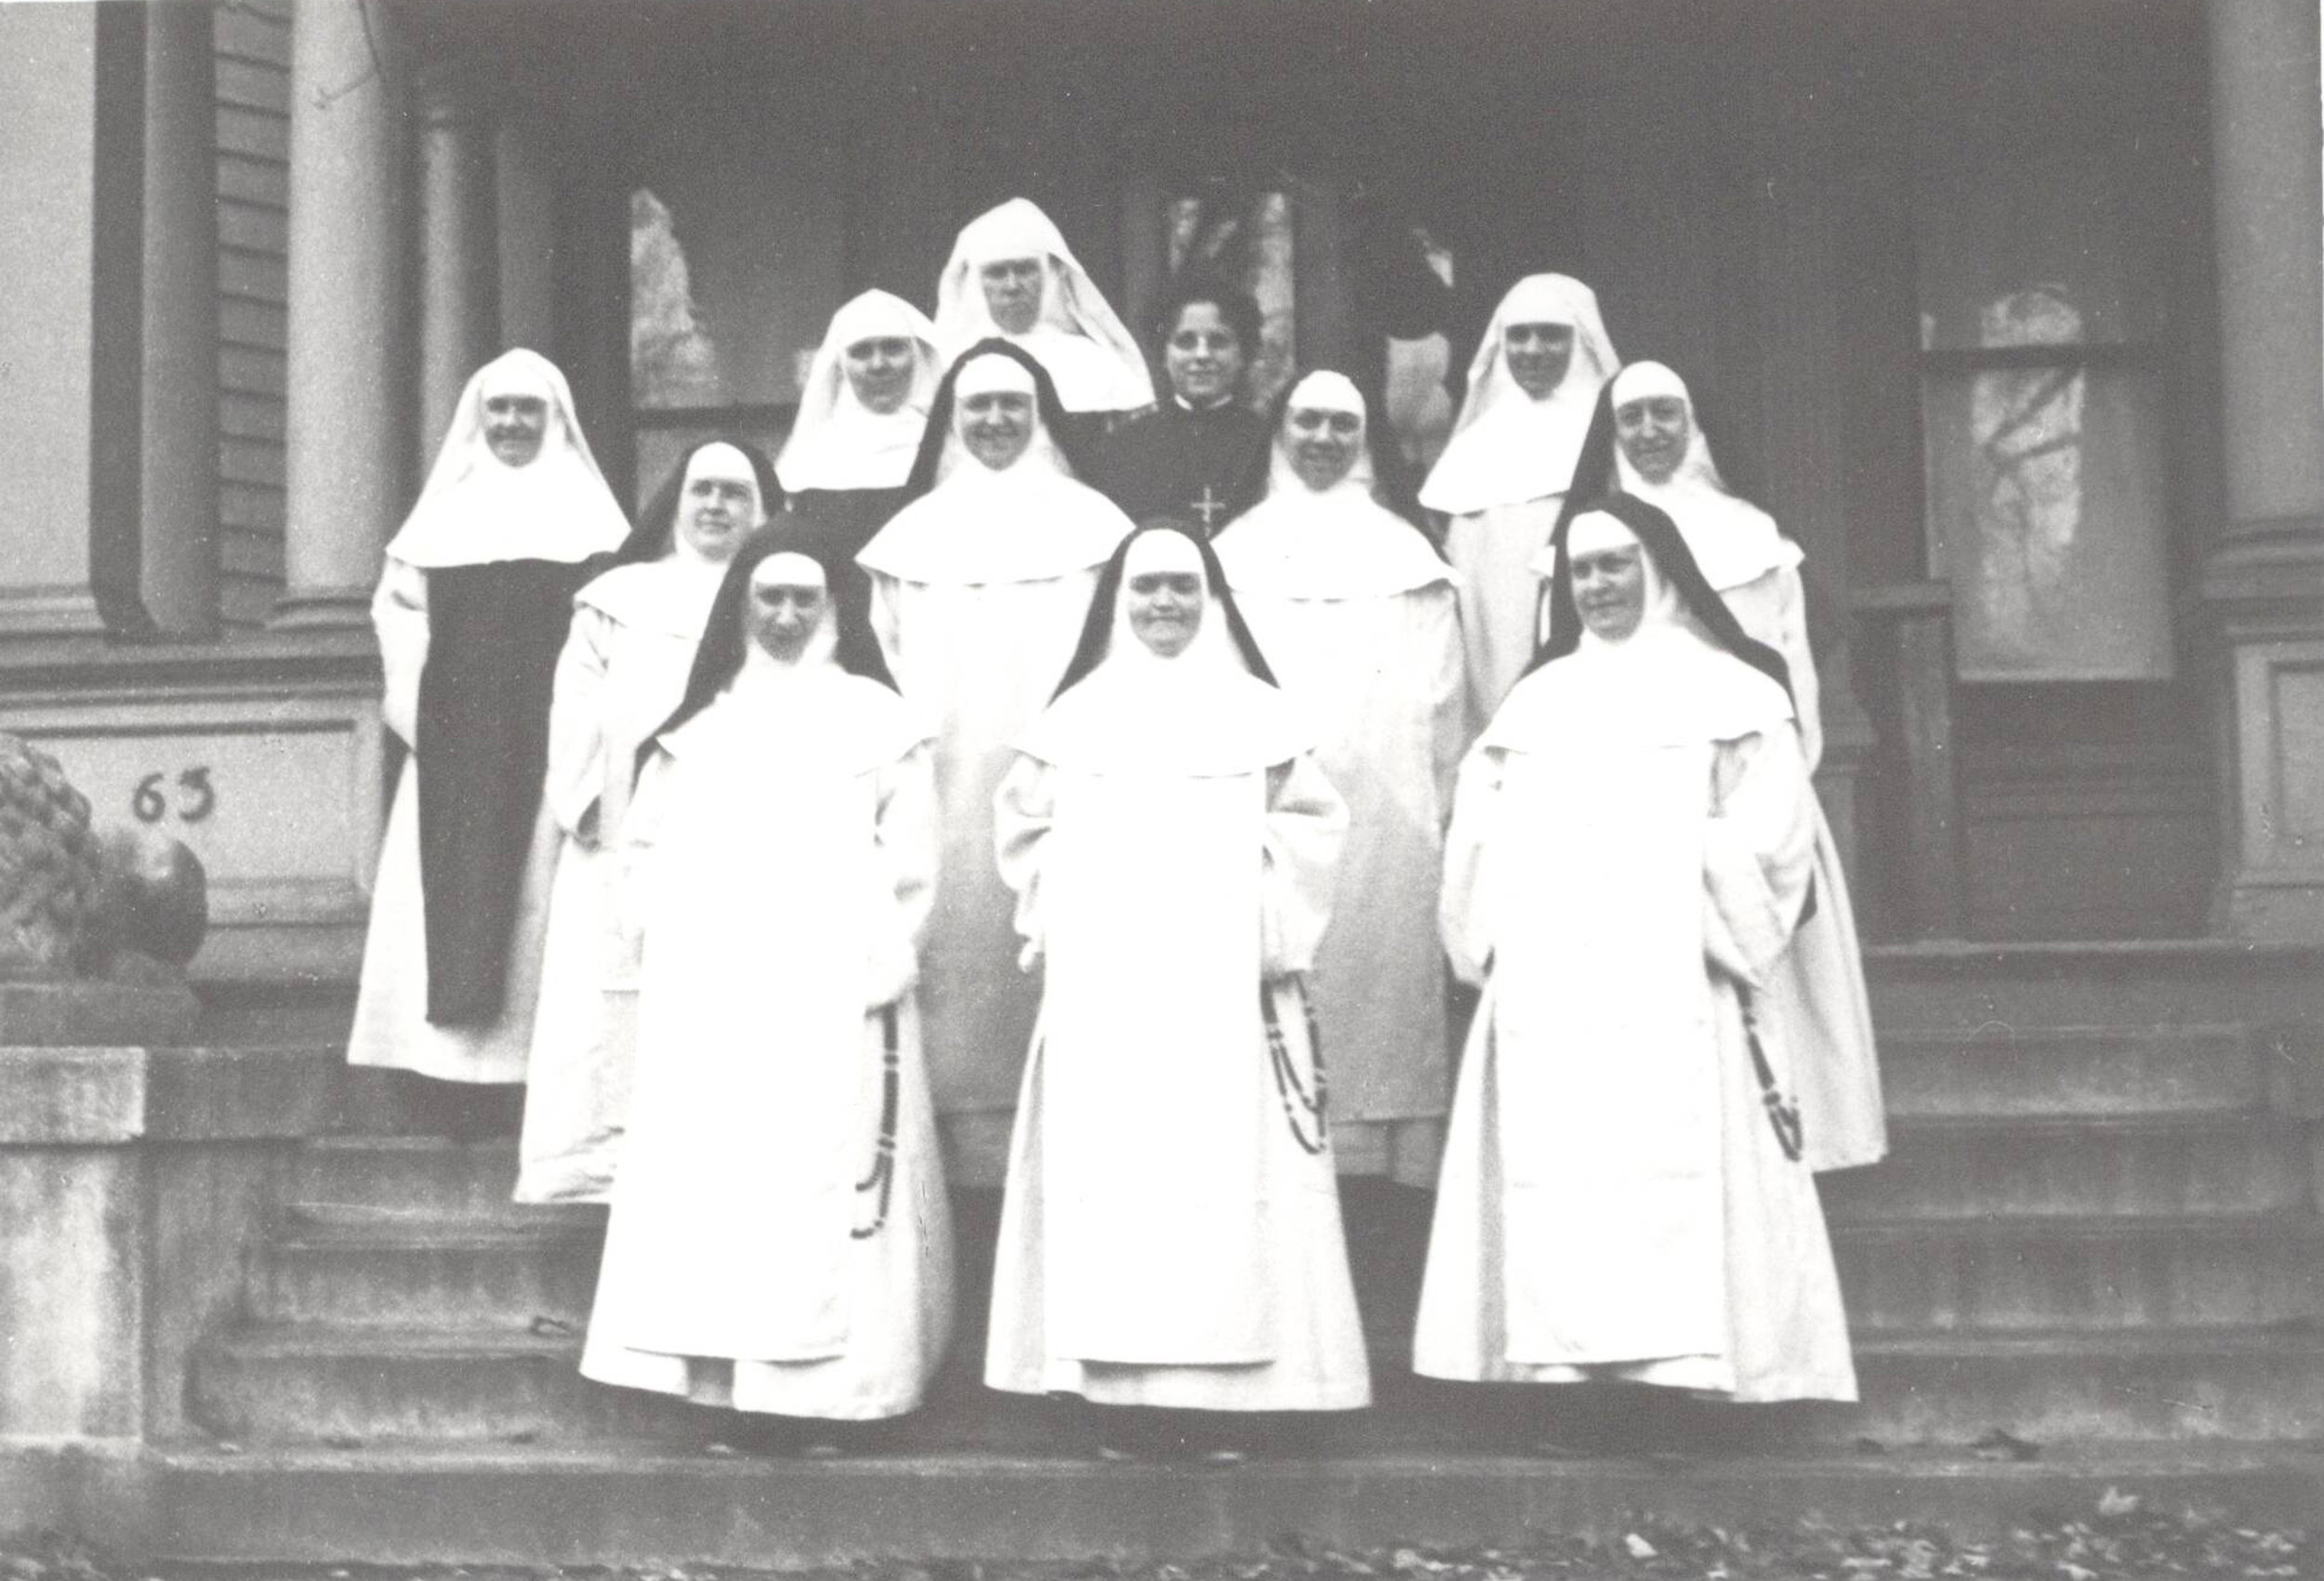 1919 Foundresses (two missing)